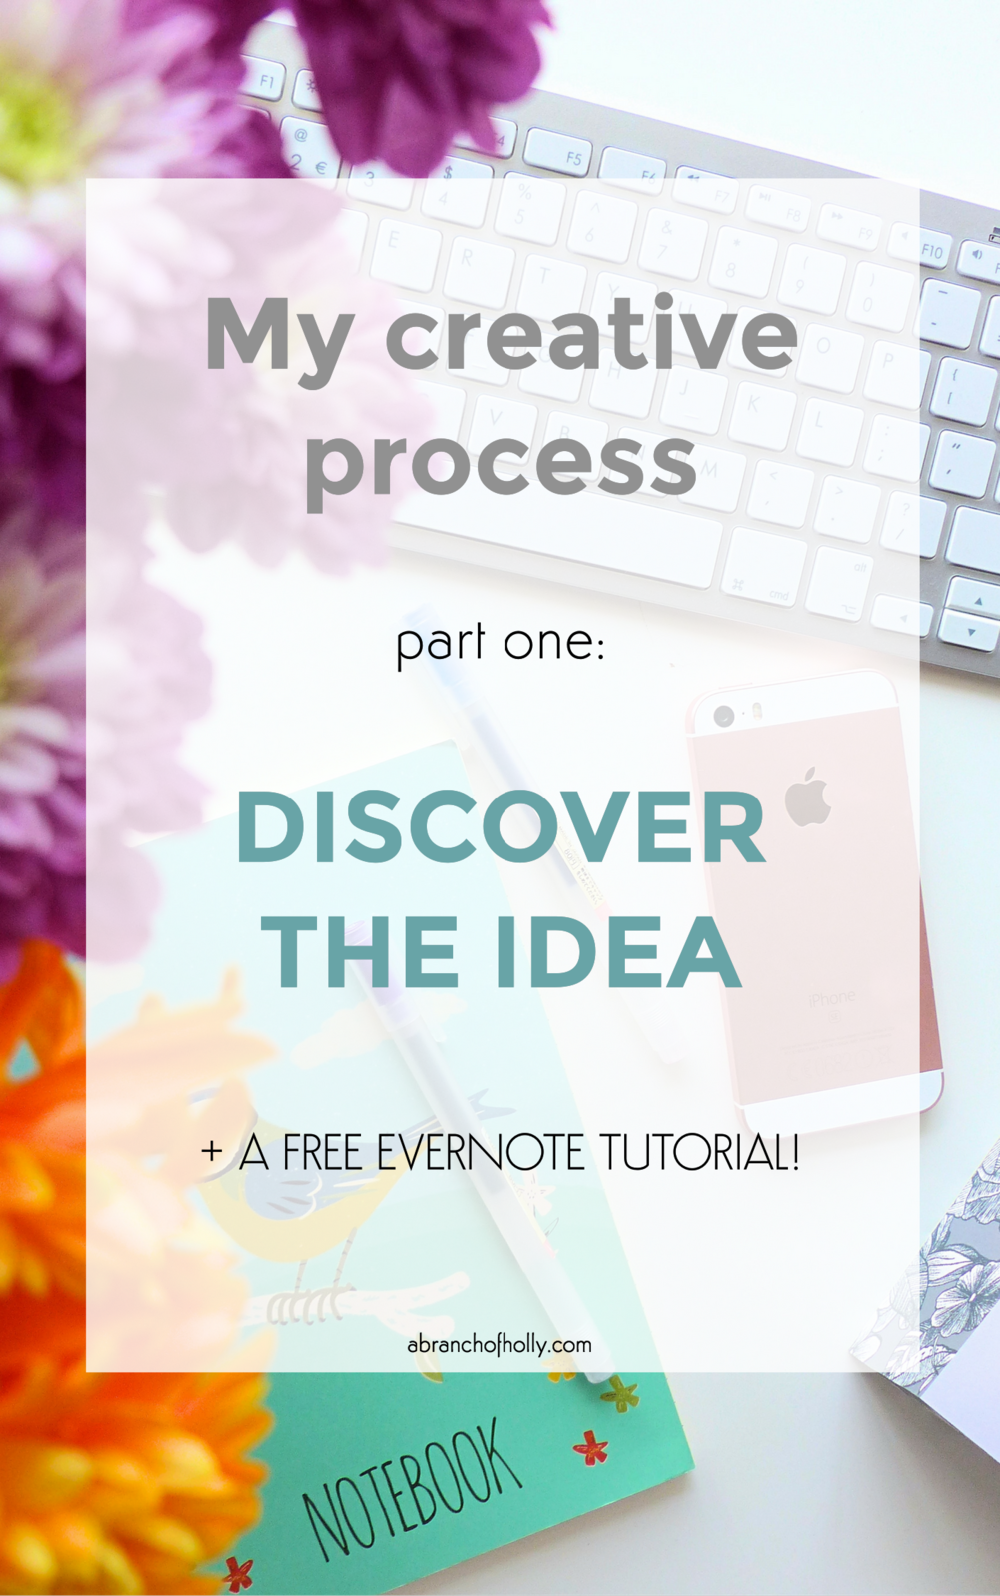 my creative process part one: discover the idea